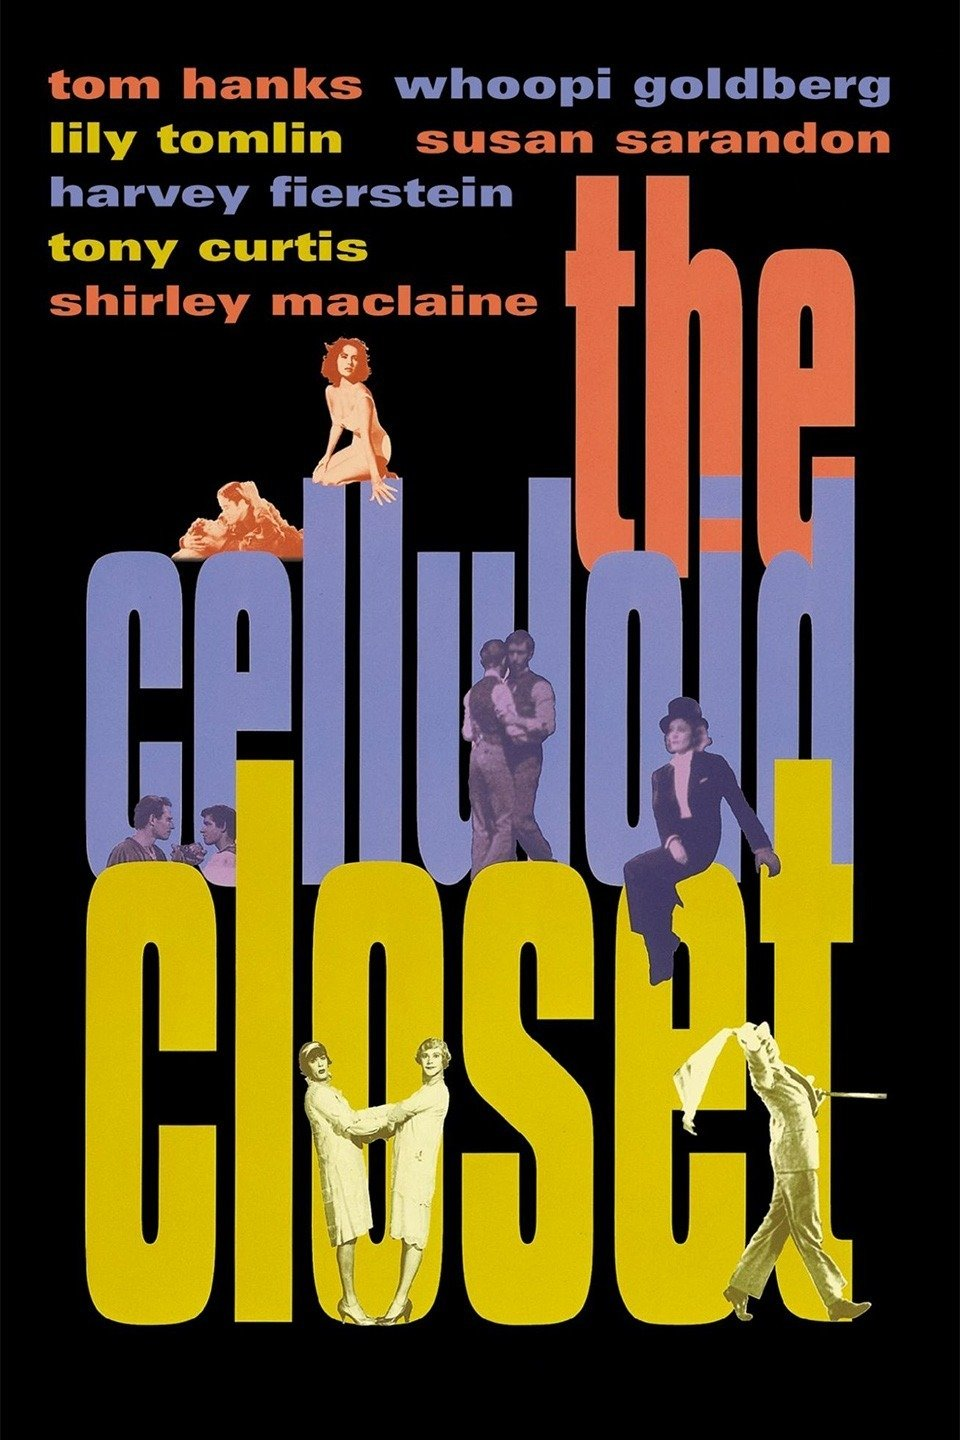 affiche du film The Celluloid Closet